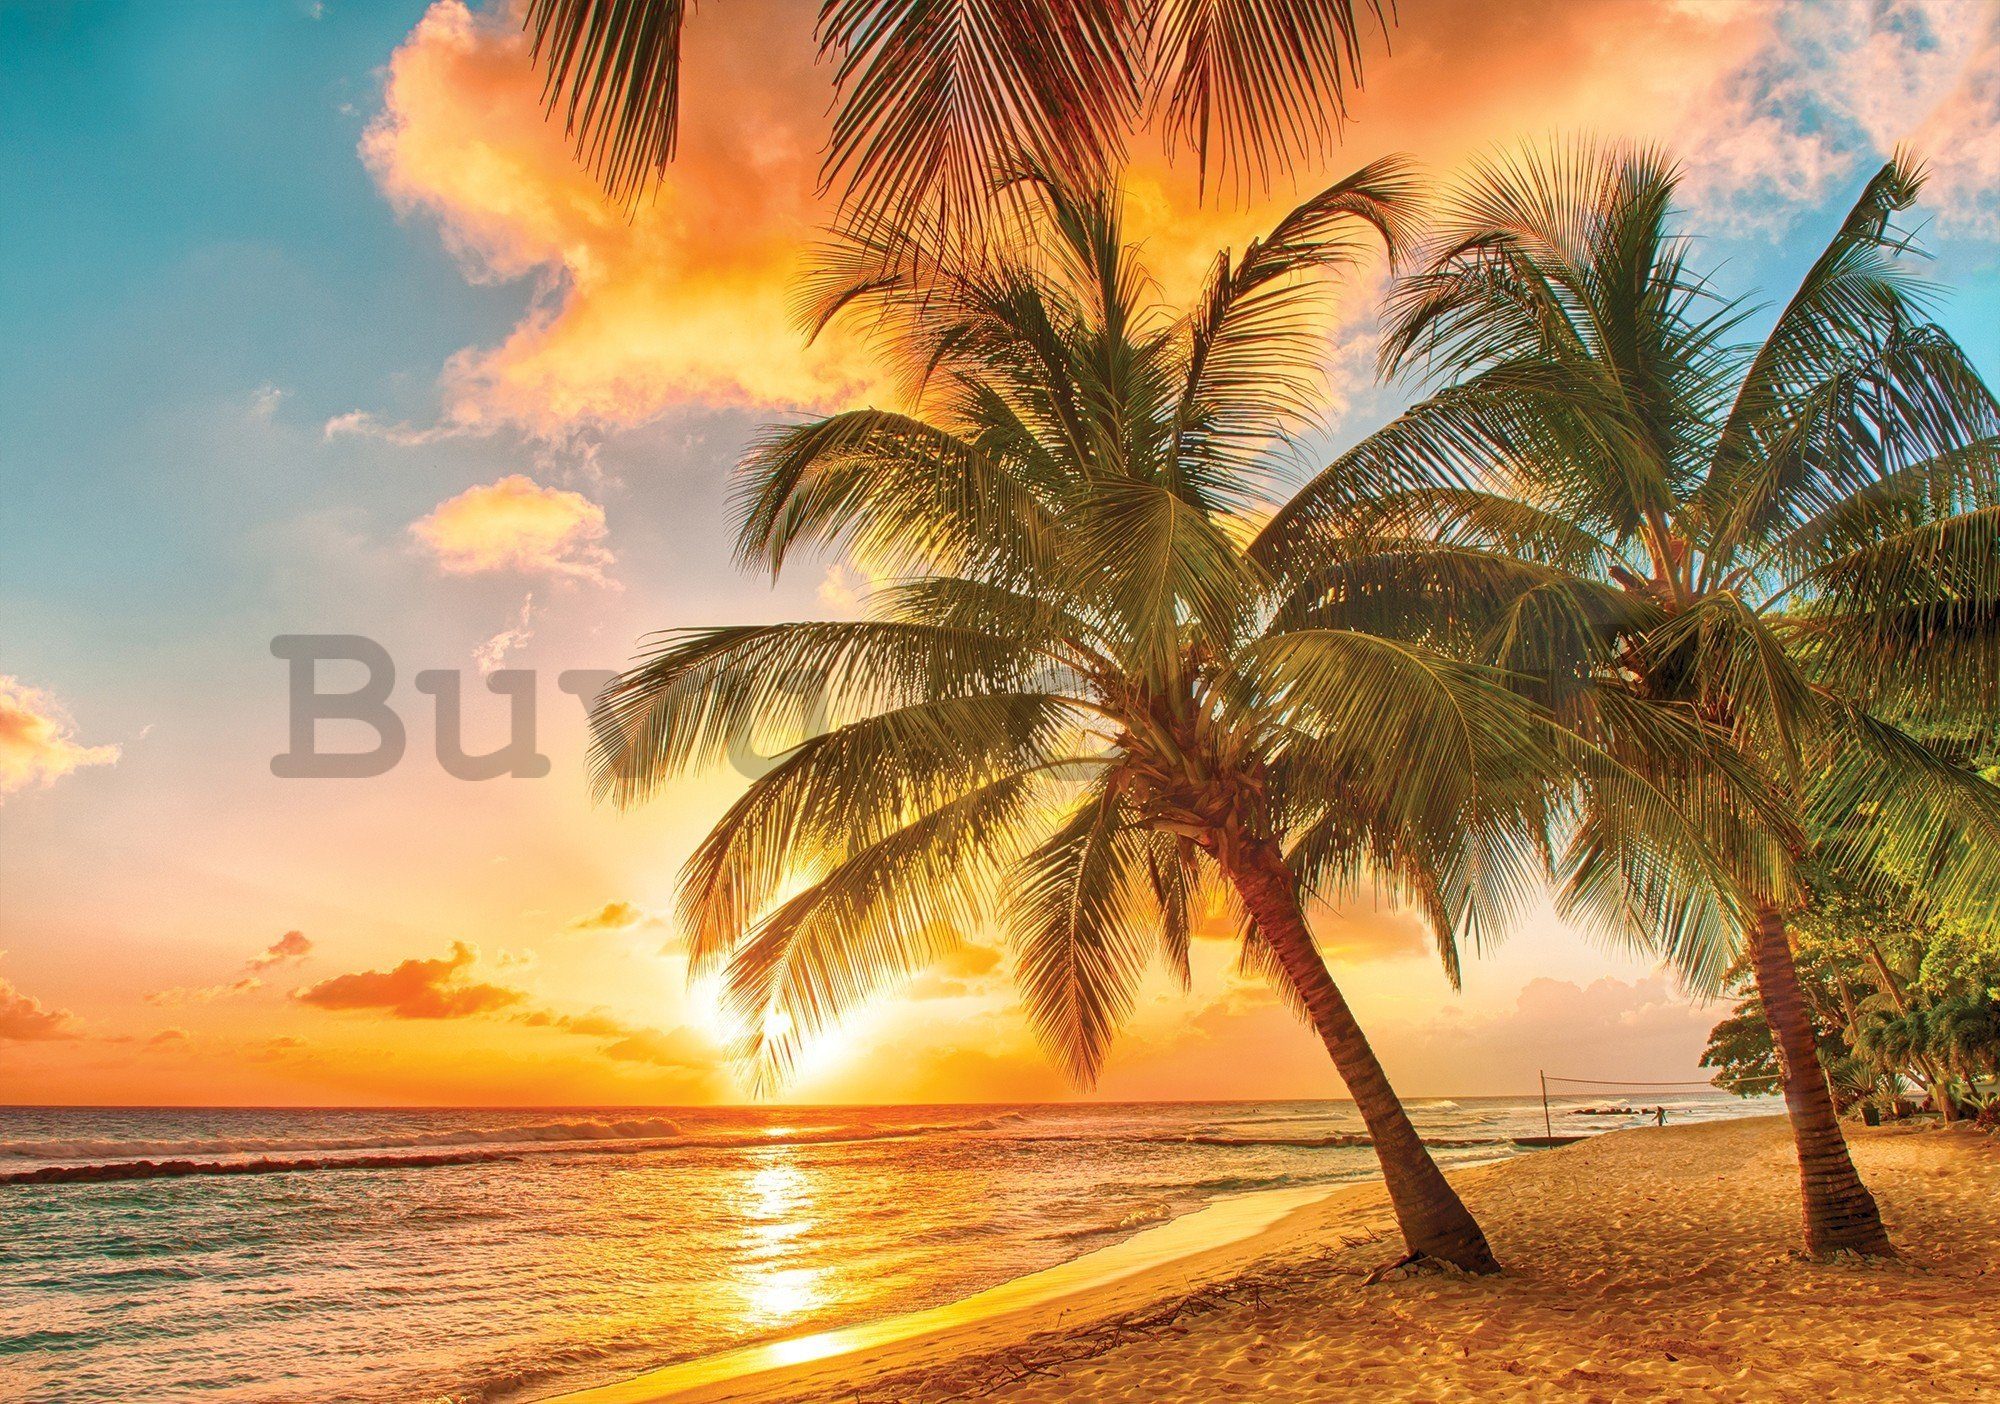 Wall mural vlies: Sunset in paradise - 416x254 cm